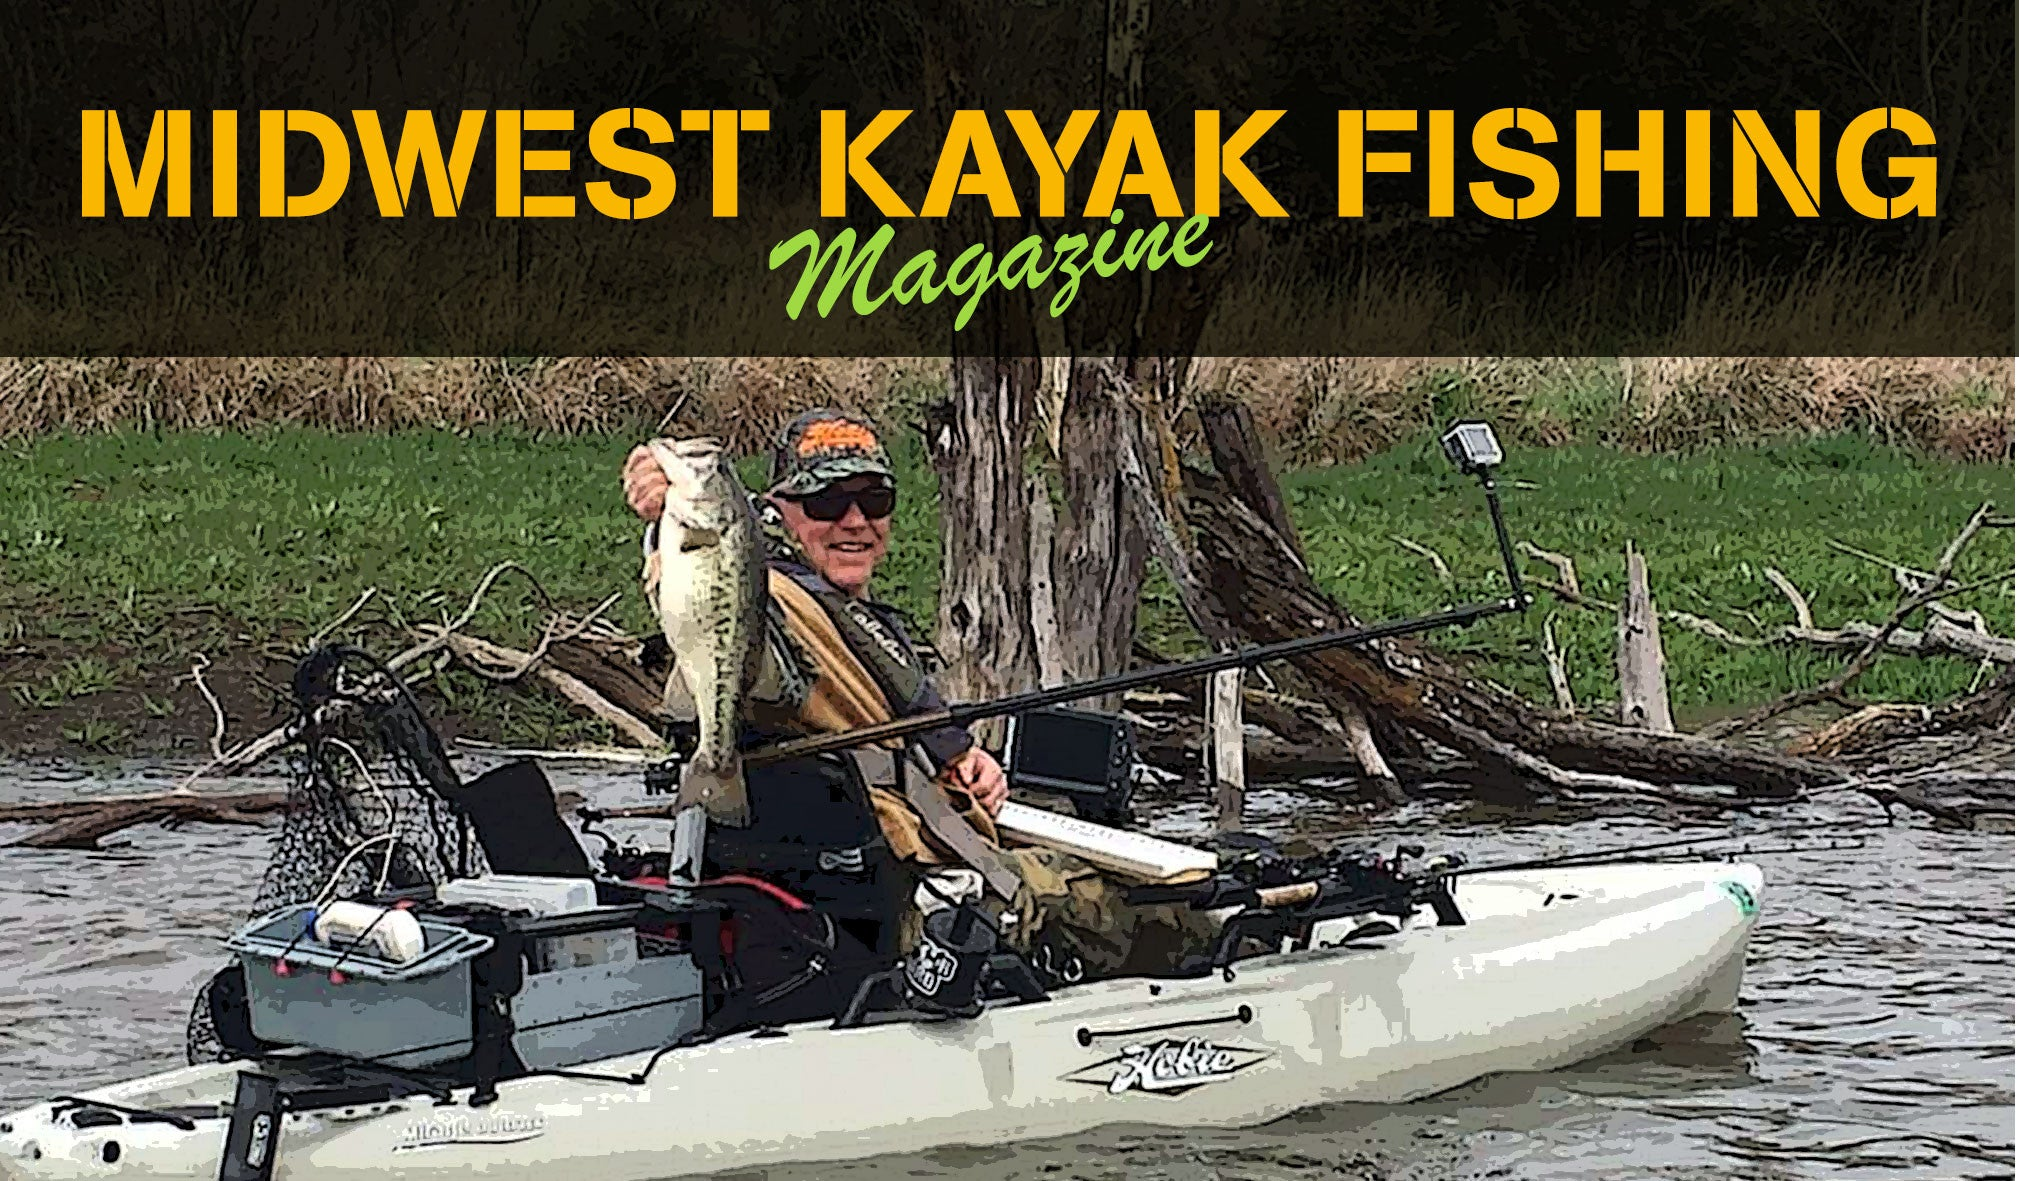 Midwest Kayak Fishing Magazine